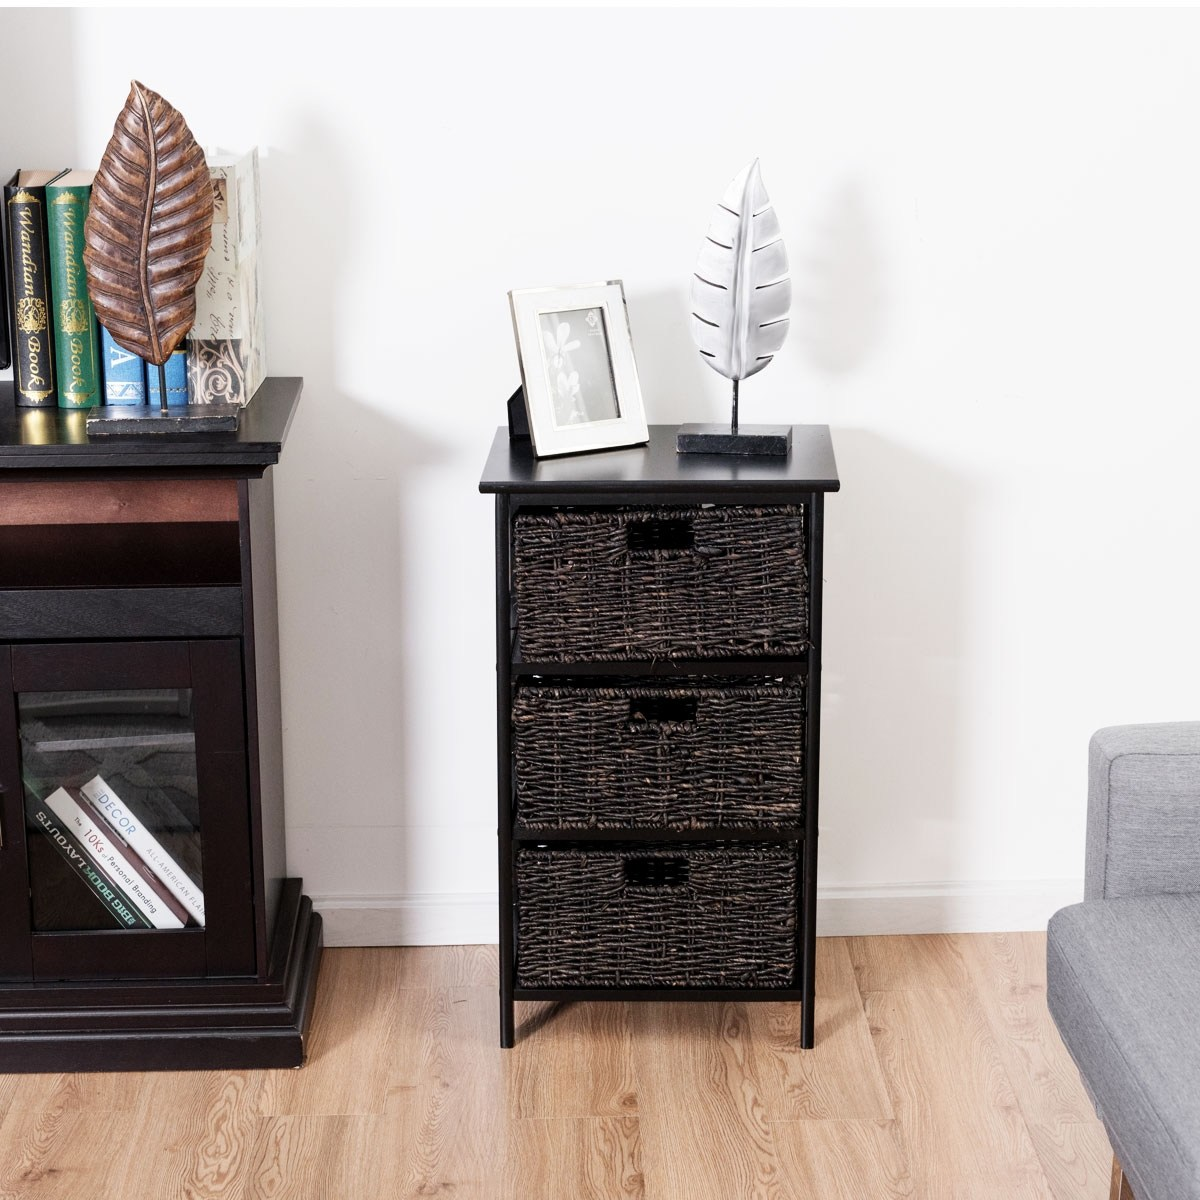 way wooden end accent storage table home office furniture decor baskets with black free shipping today brass ship lights threshold plates low corner cast aluminum coffee